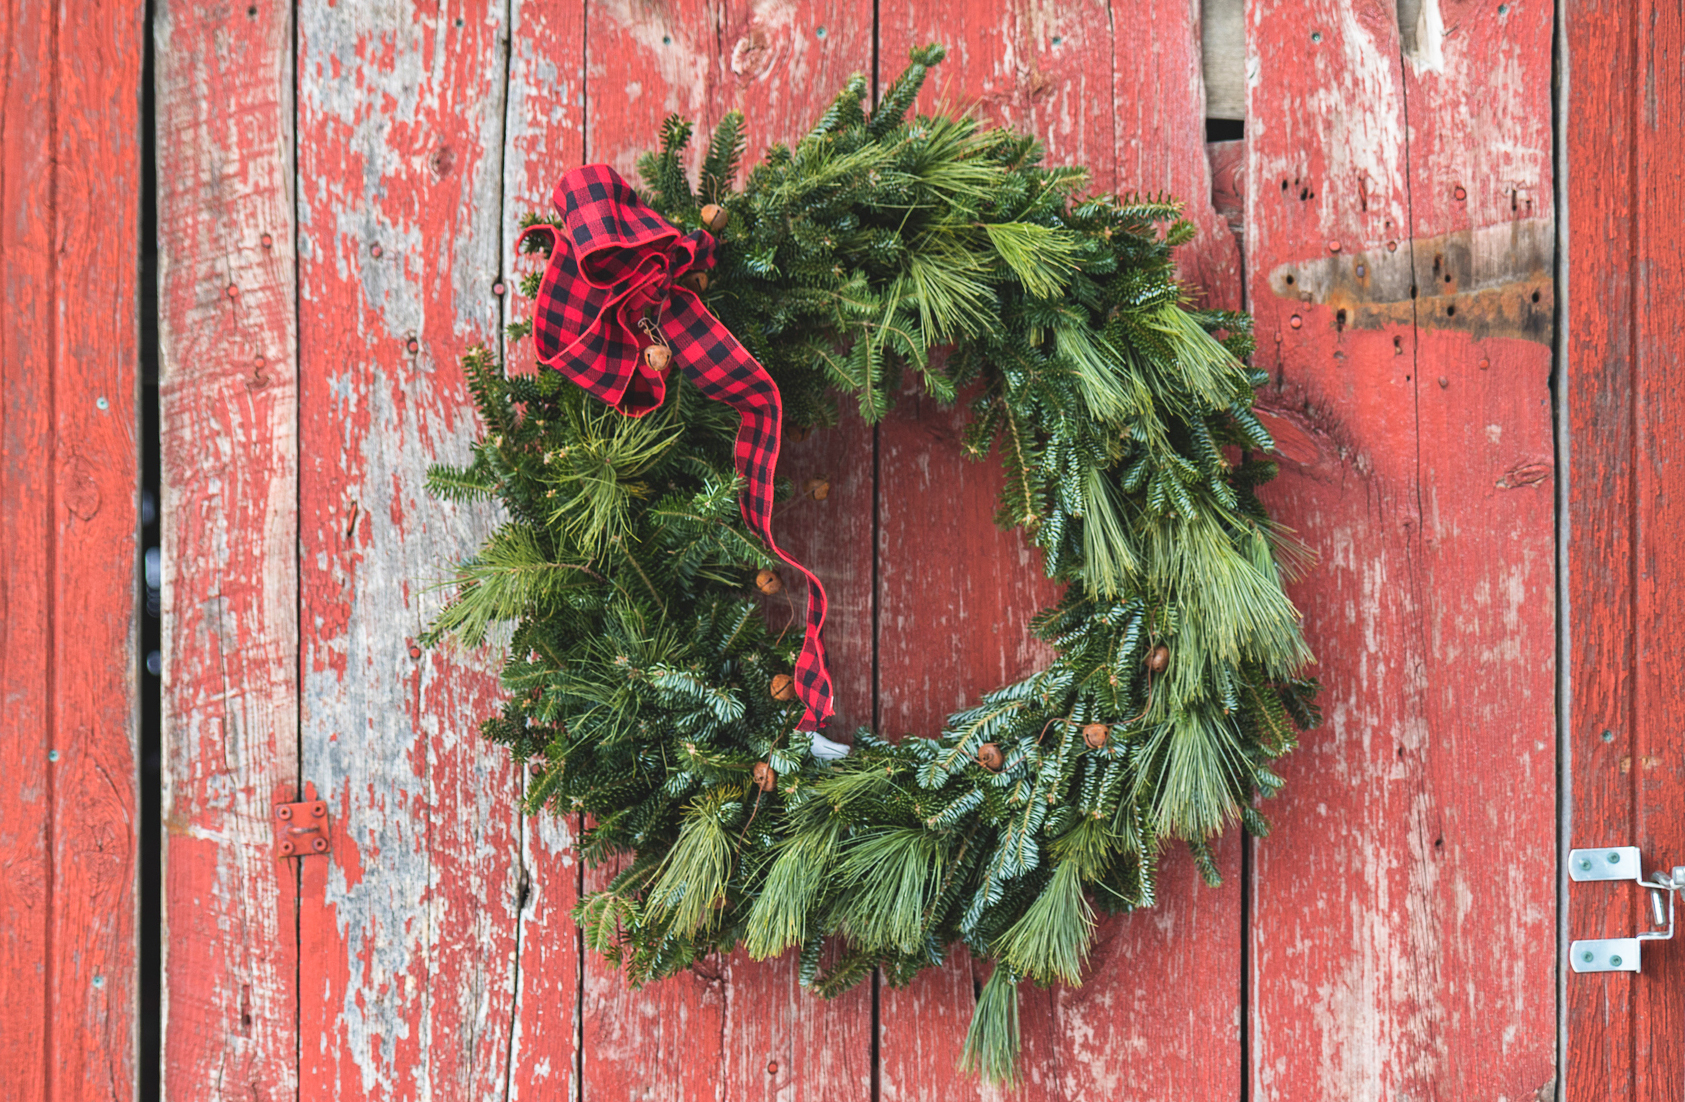 Christmas Wreath Meaning | LoveToKnow